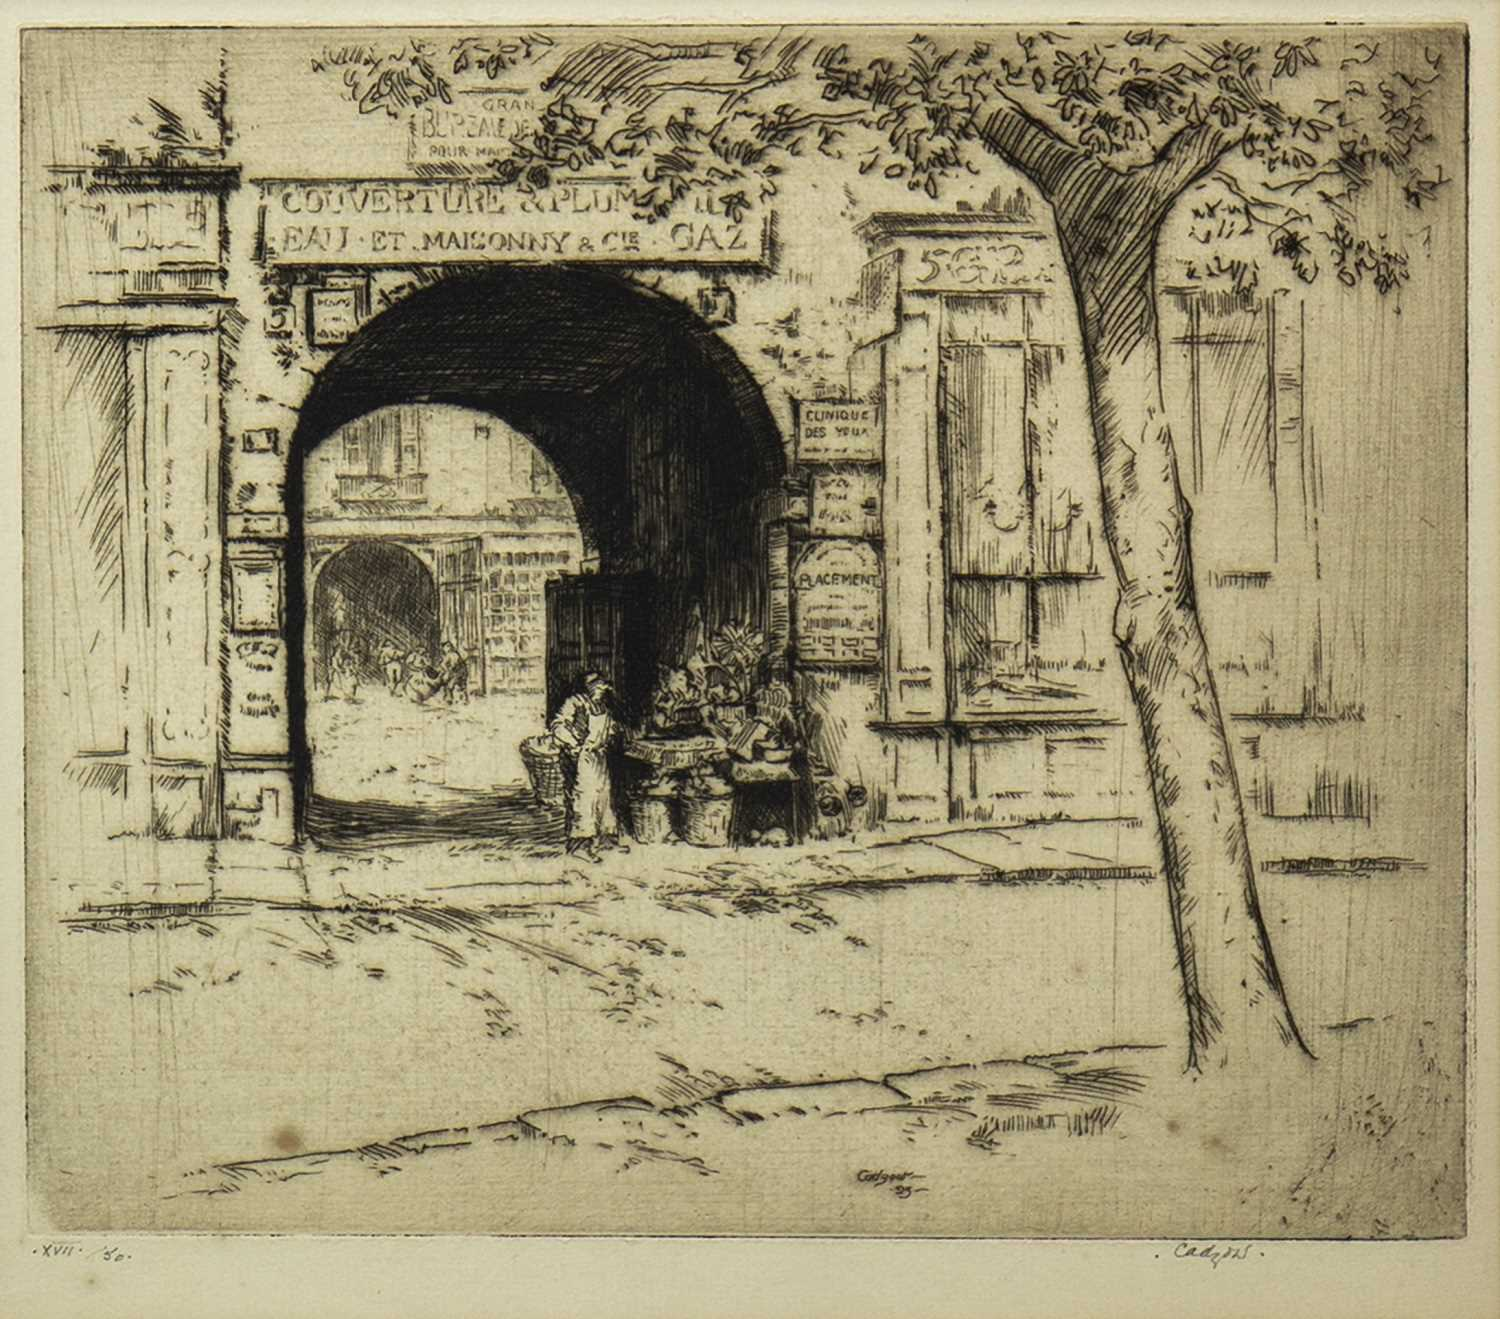 Lot 722-QUIET FRENCH STREET, AN ETCHING BY JAMES CADZOW